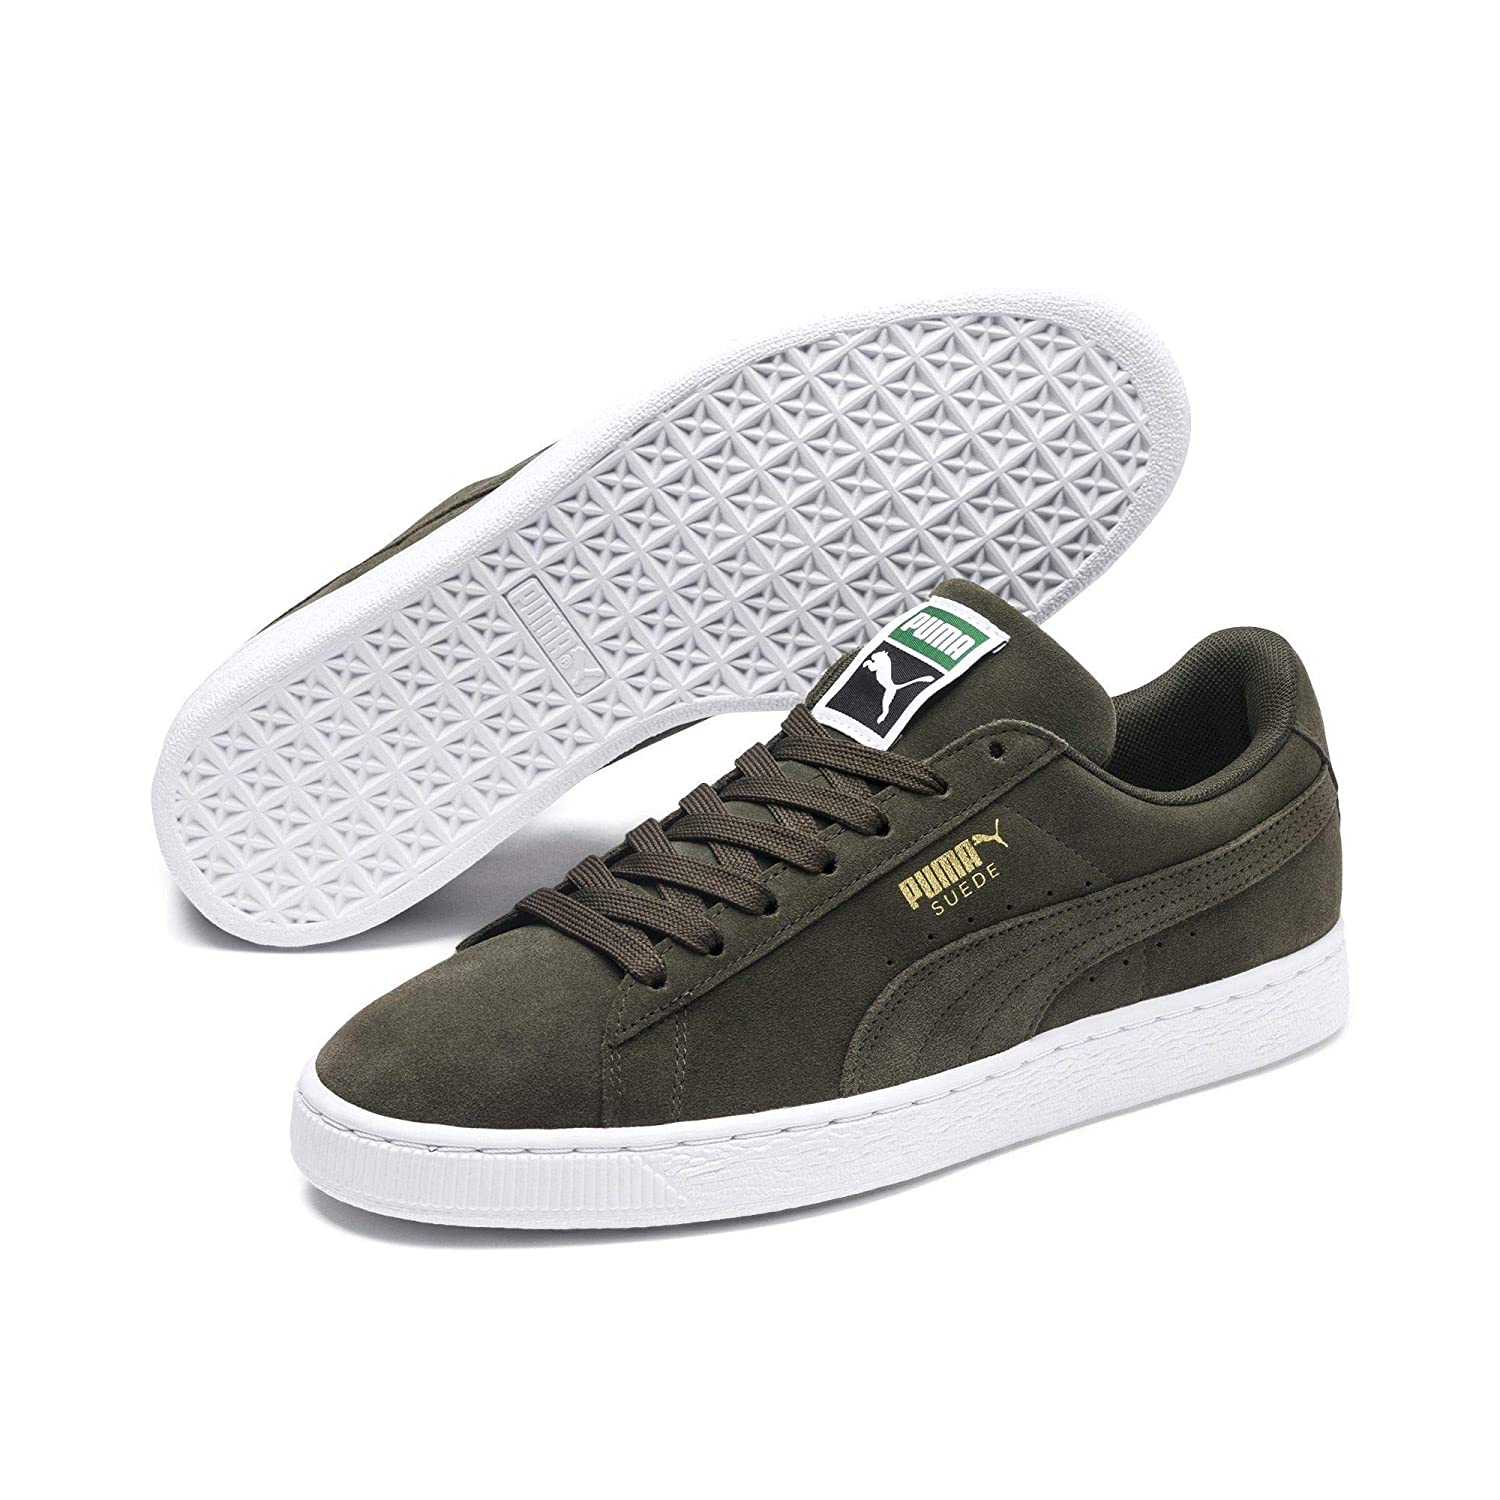 Puma Suede Classic +, Men's Low Top Sneakers, Grey (forest Night white 65), 13 UK (48.5 EU)